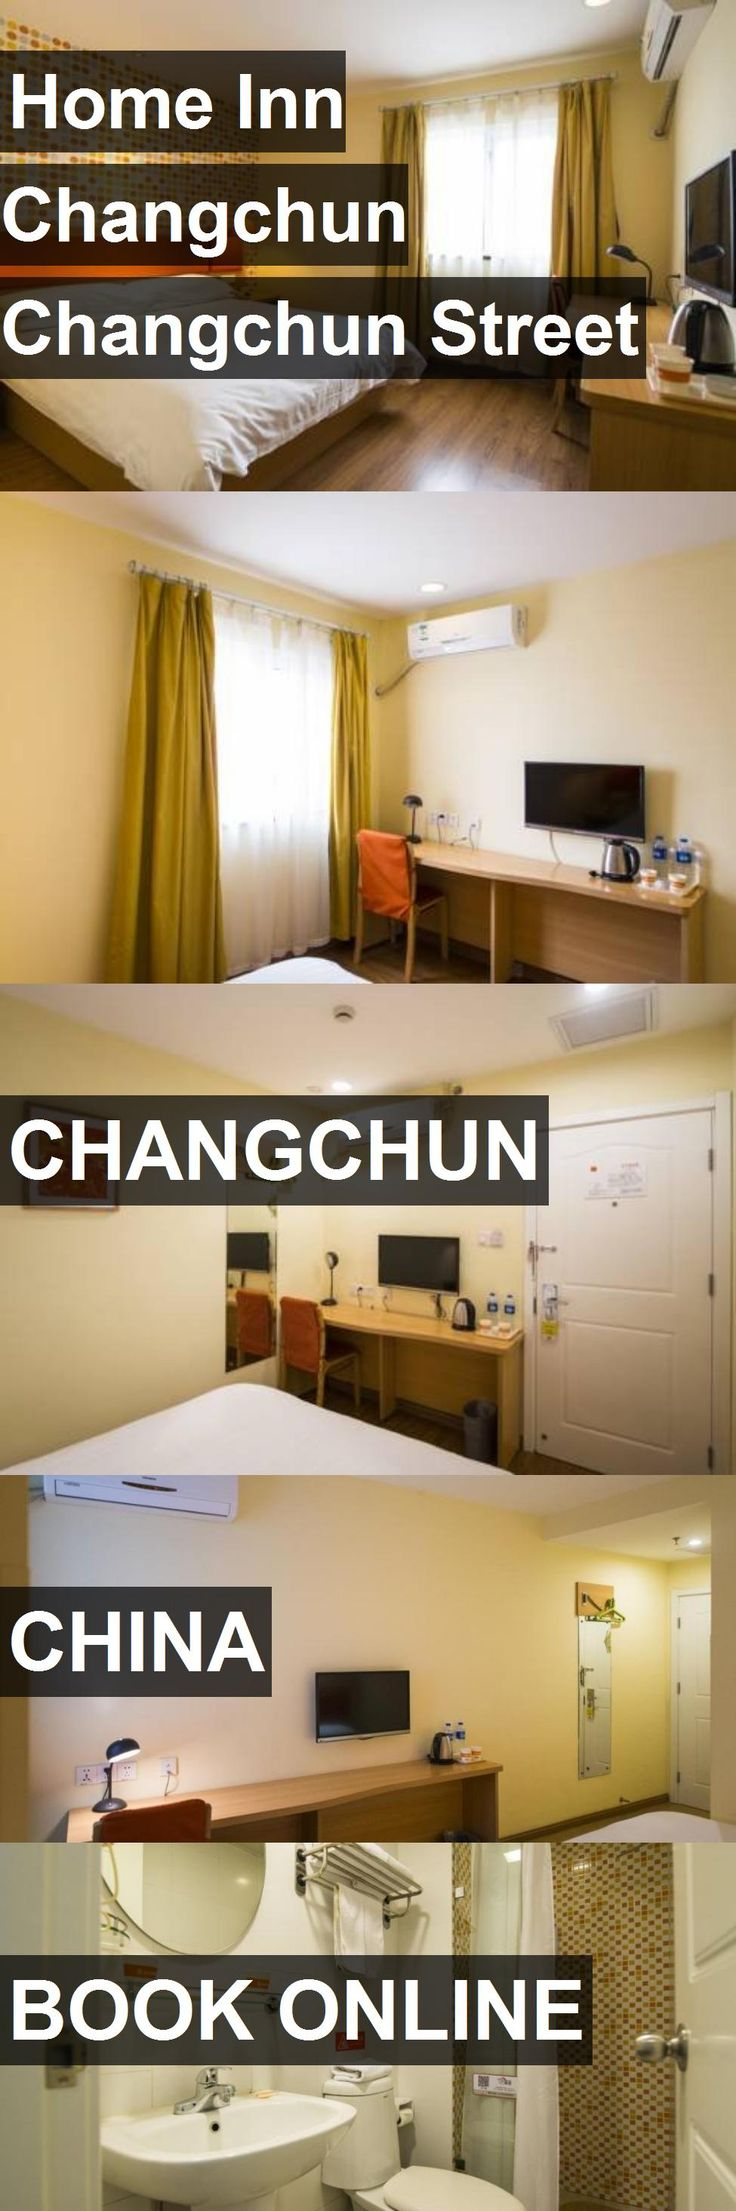 Hotel Home Inn Changchun Changchun Street in Changchun, China. For more information, photos, reviews and best prices please follow the link. #China #Changchun #travel #vacation #hotel